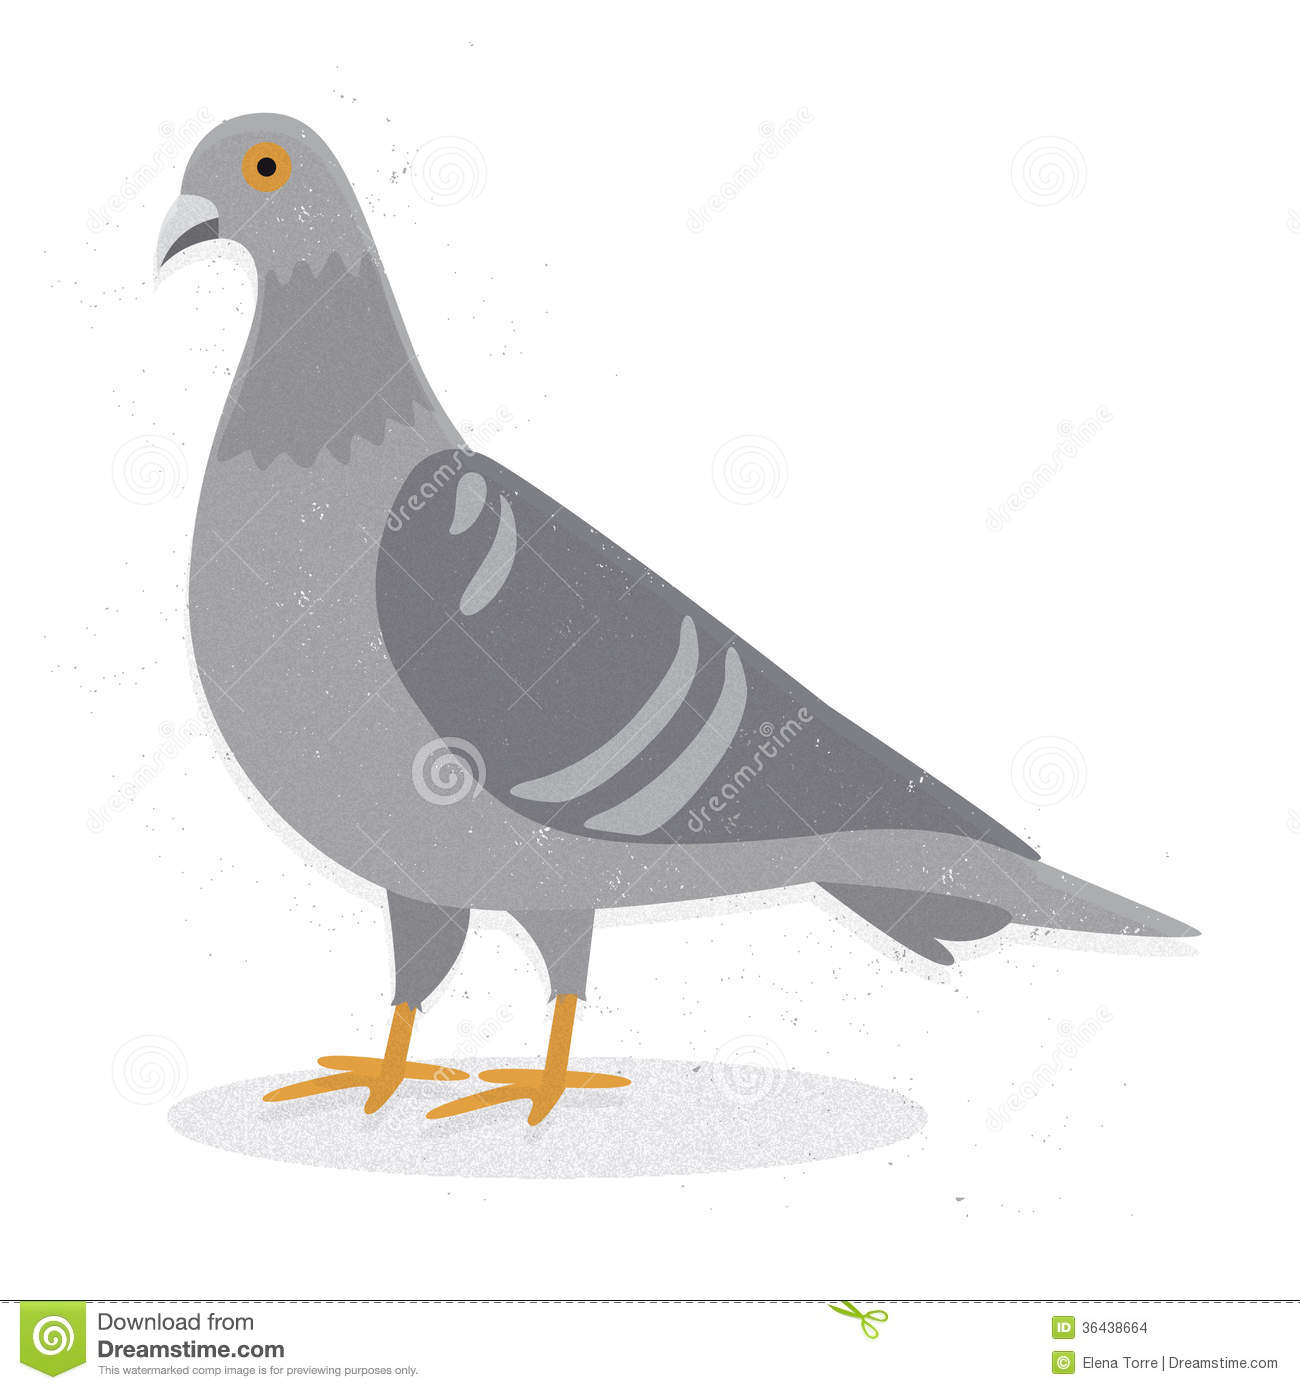 Pigeon illustration - photo#3